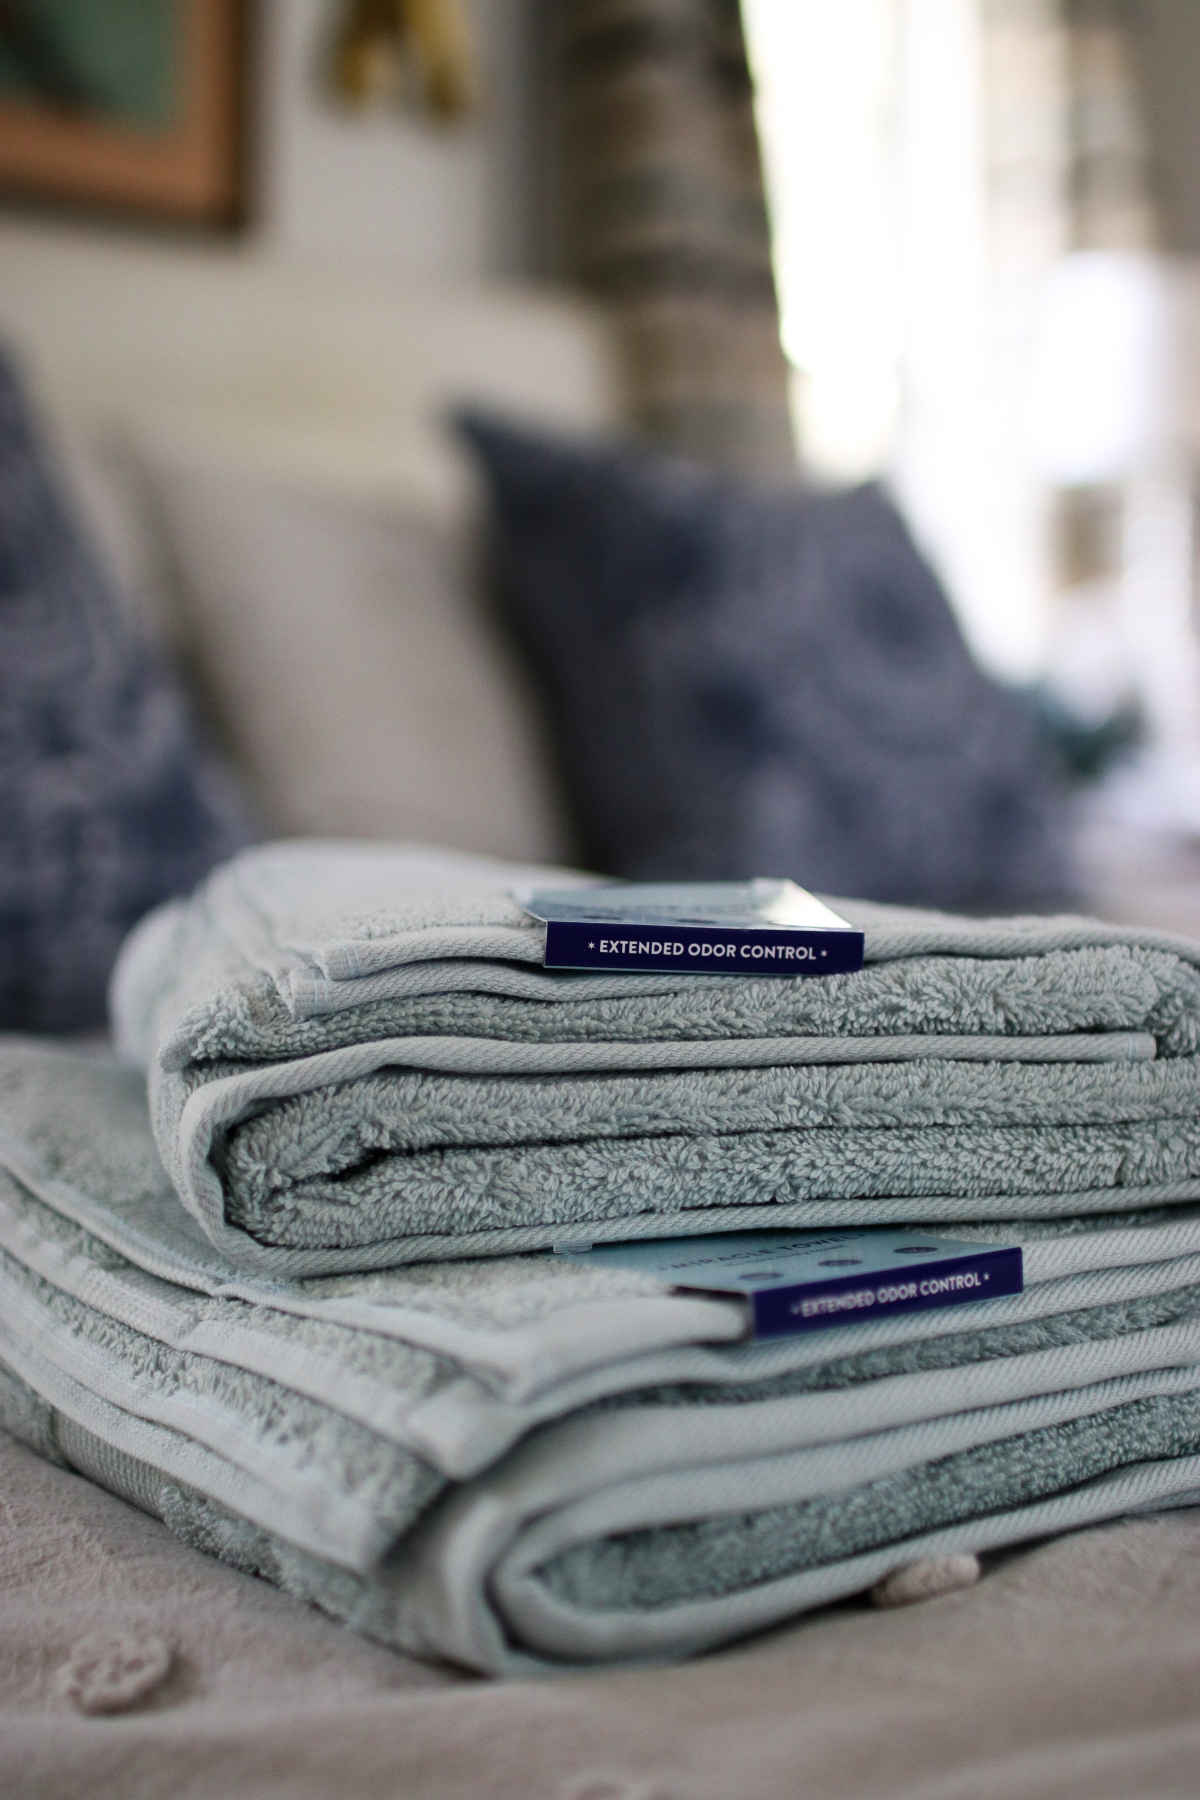 MIRACLE Brand: Towels that fight unwanted bacteria